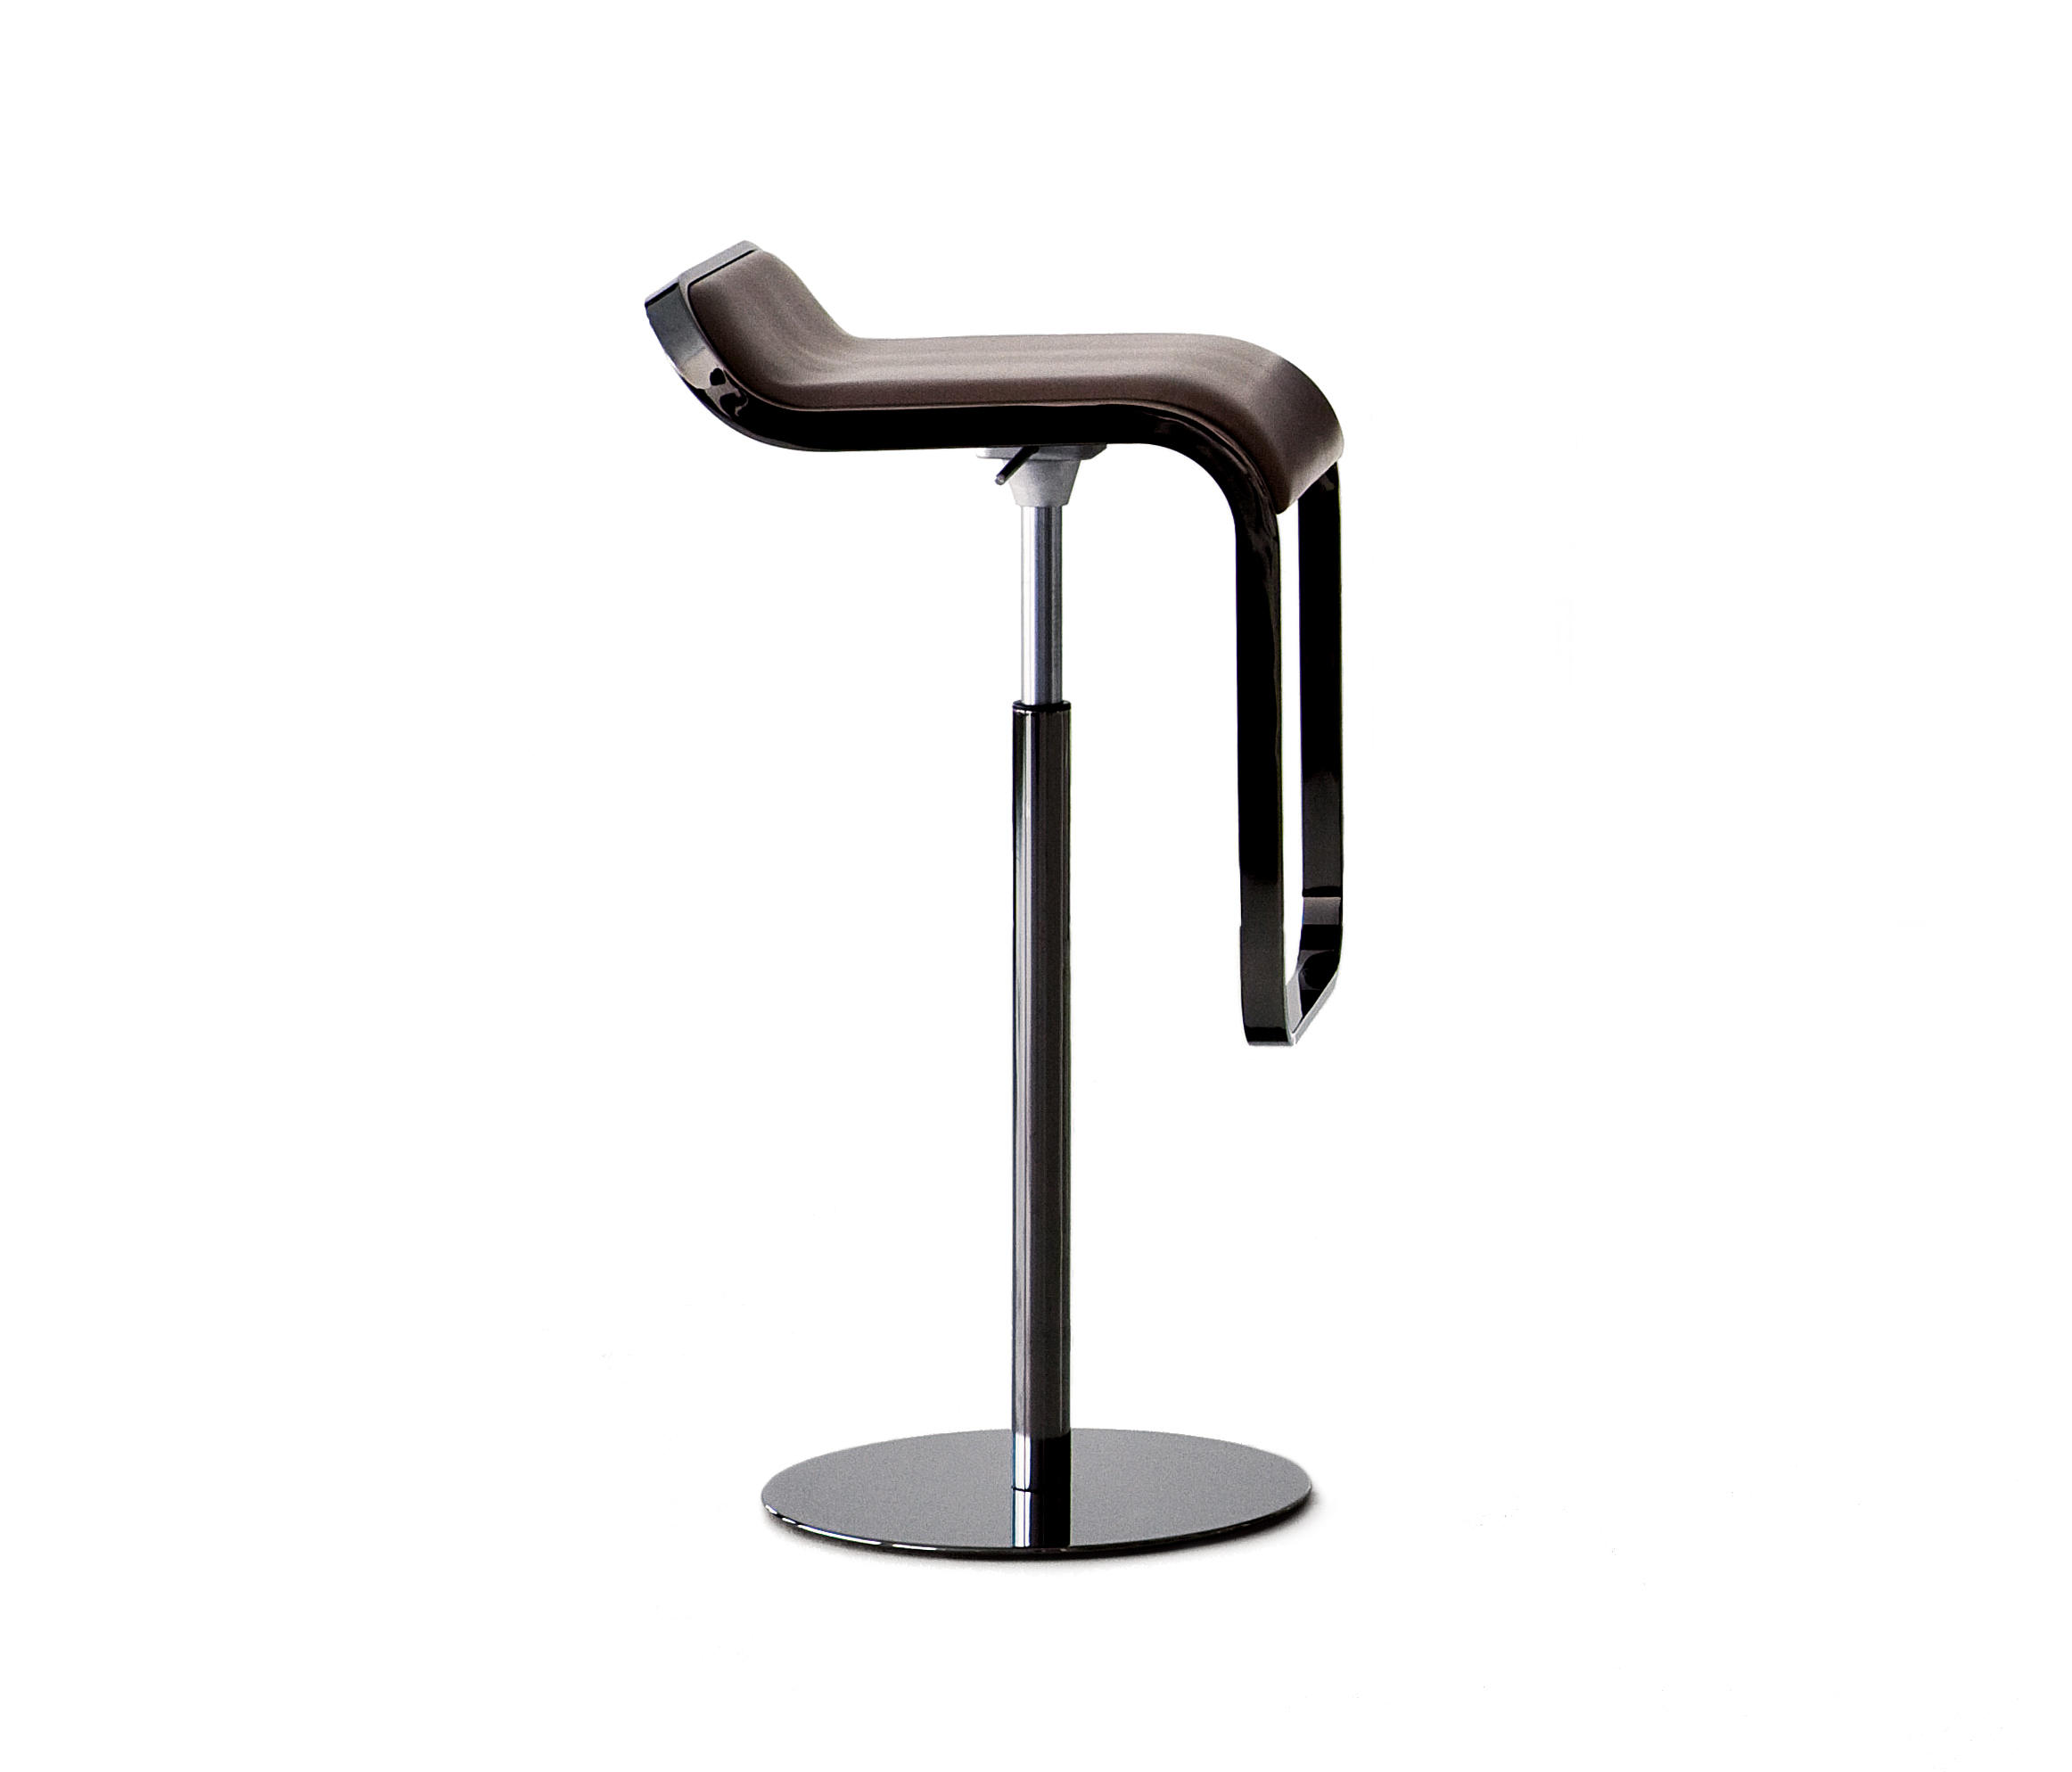 Lem Bar Stools From Lapalma Architonic